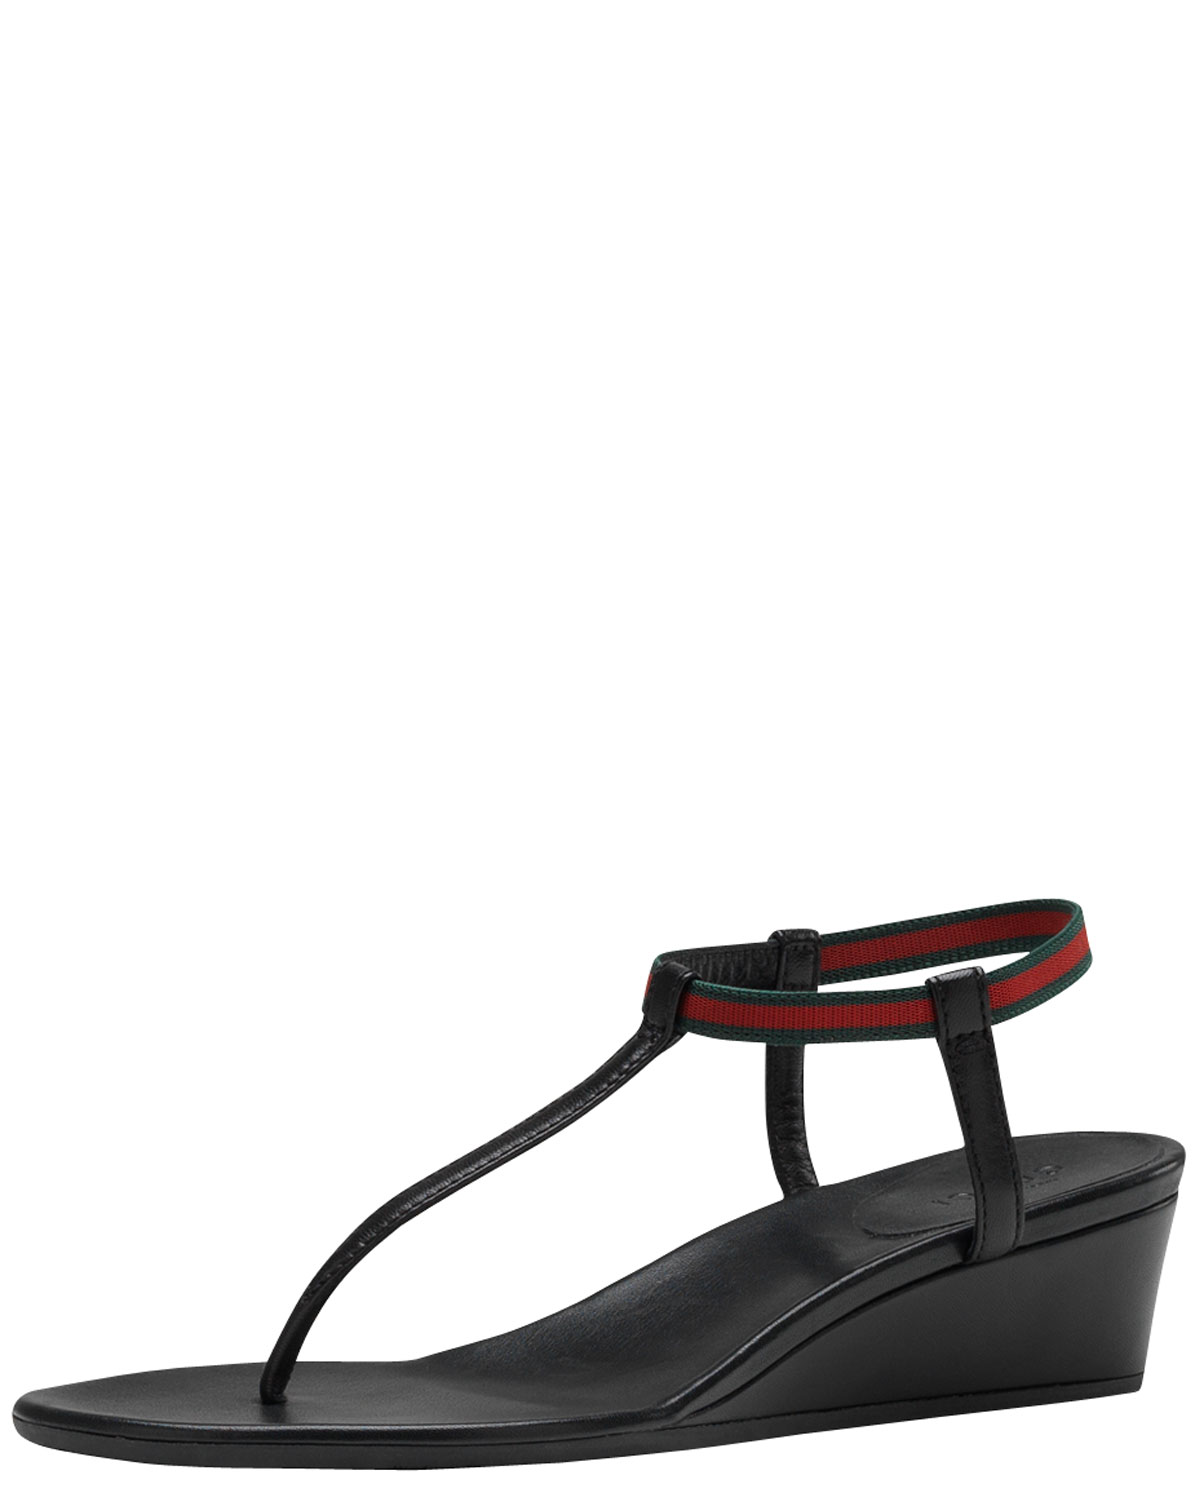 d63f1b490d29 Lyst - Gucci Areia Thong Wedge Sandal in Black